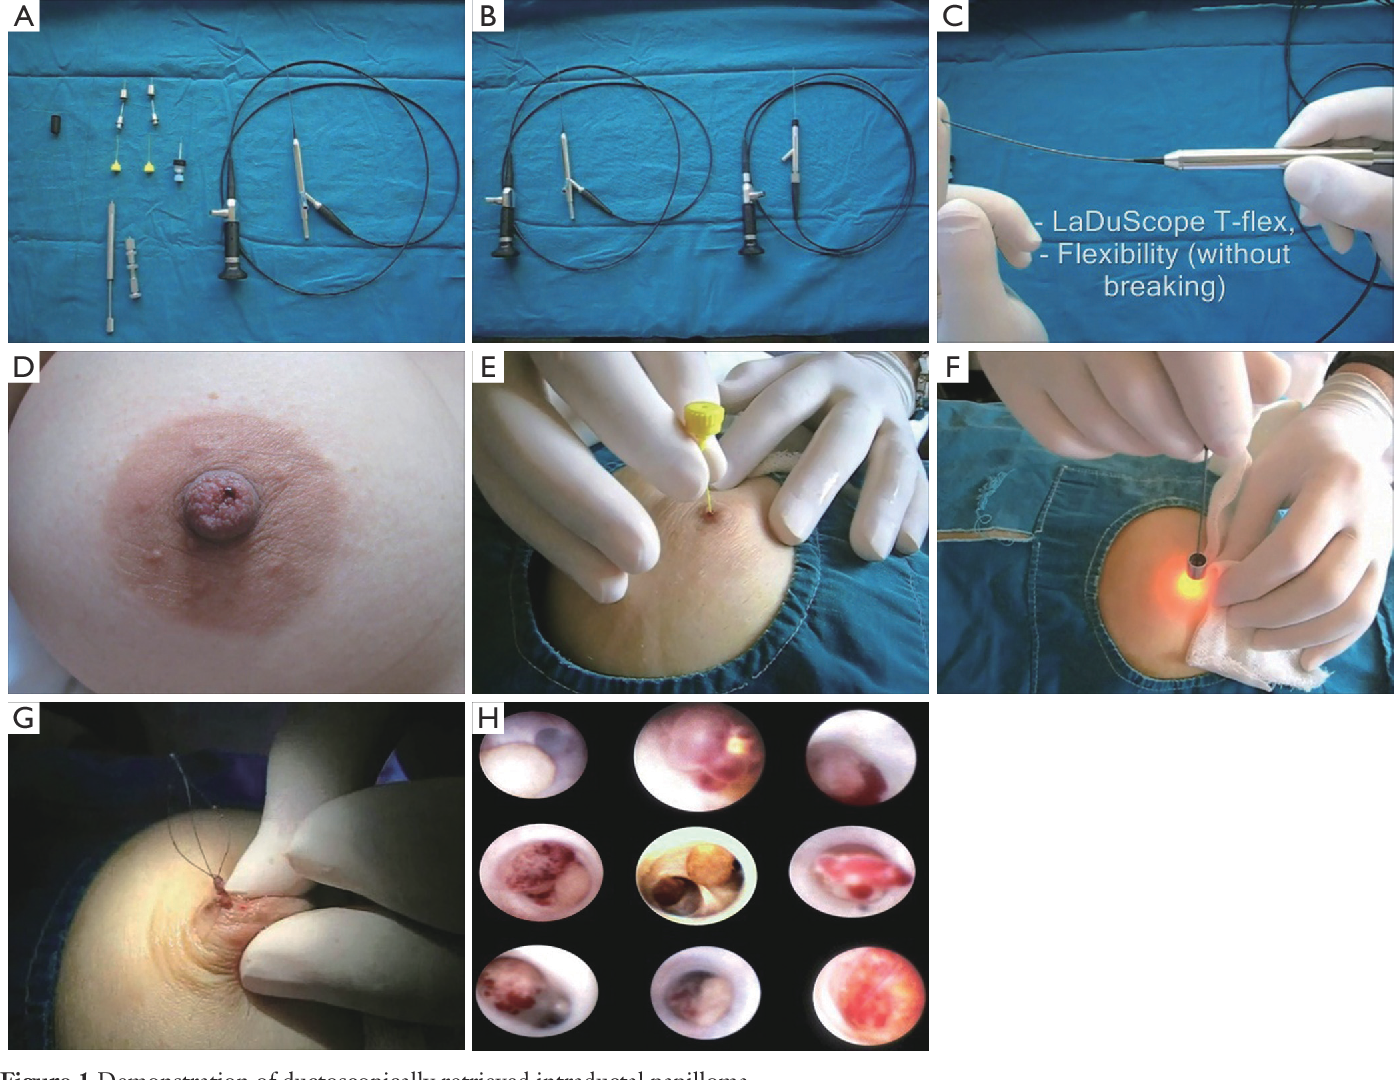 intraductal papilloma excision